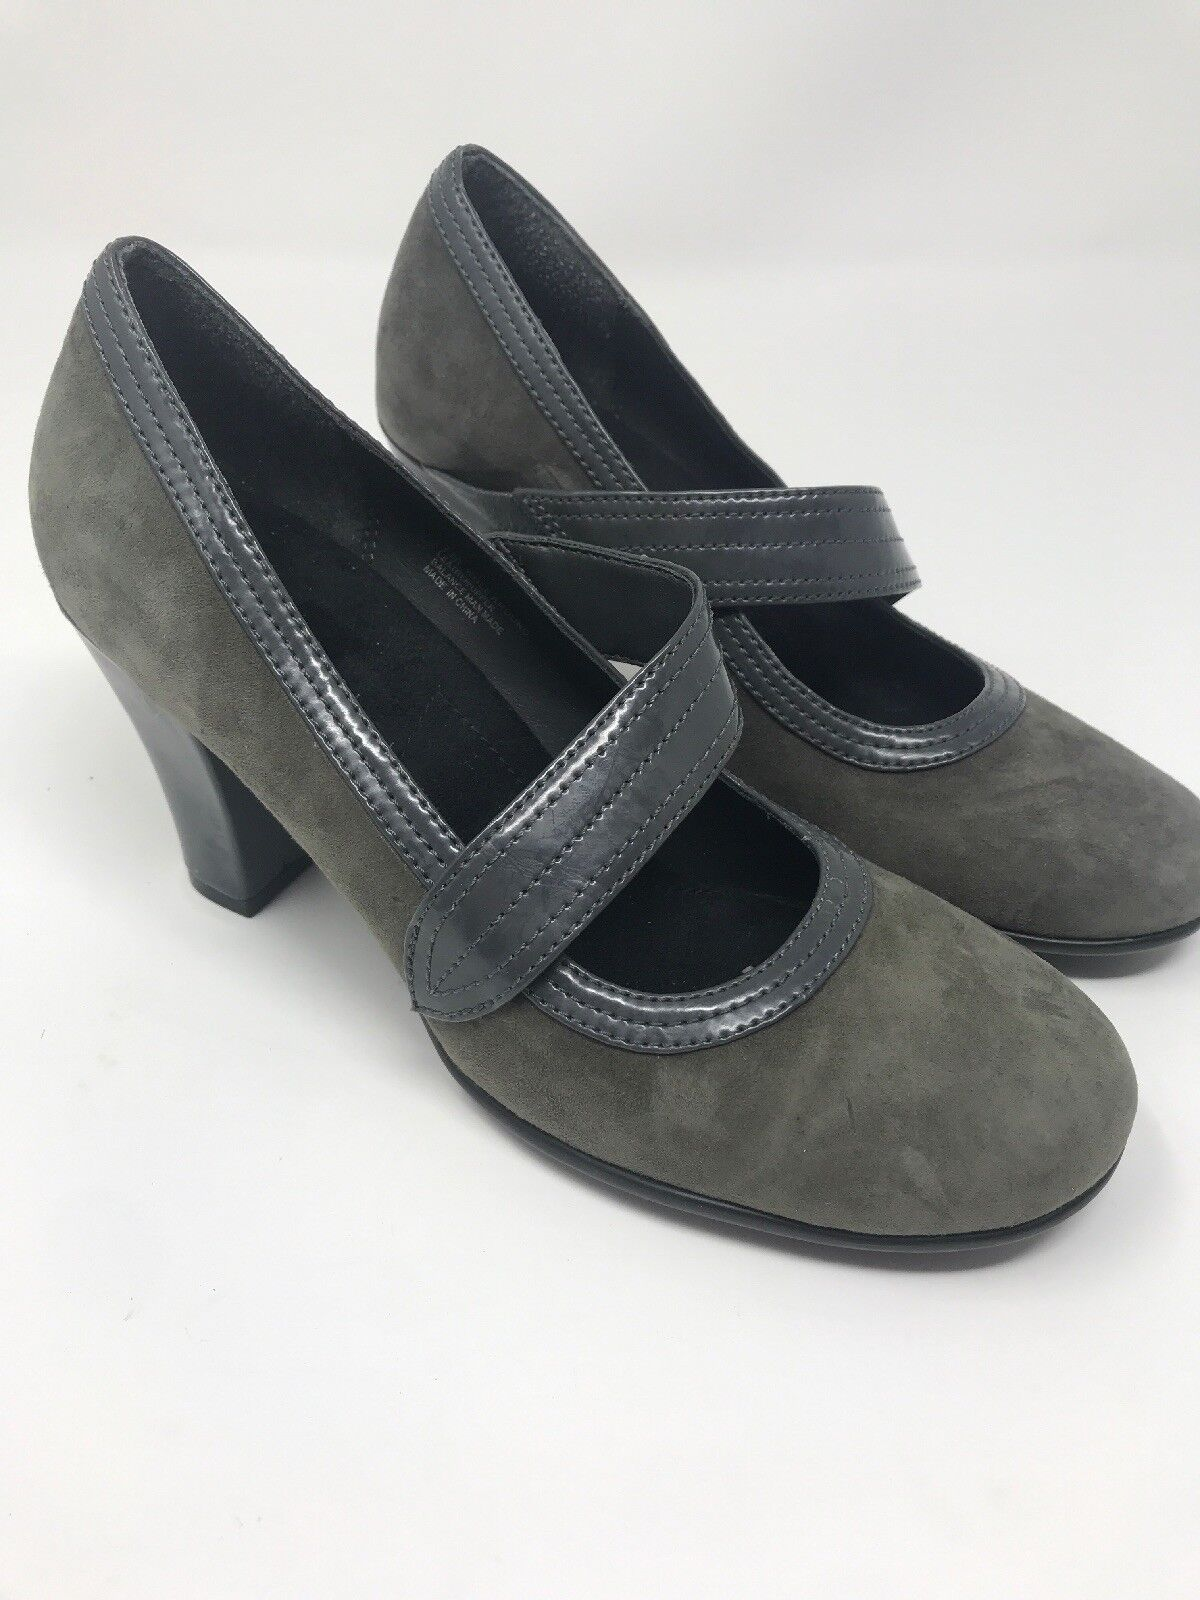 Aerosoles Sz 7 M Green Olive  Suede Leather Mary Jane Heels Pumps Role Around